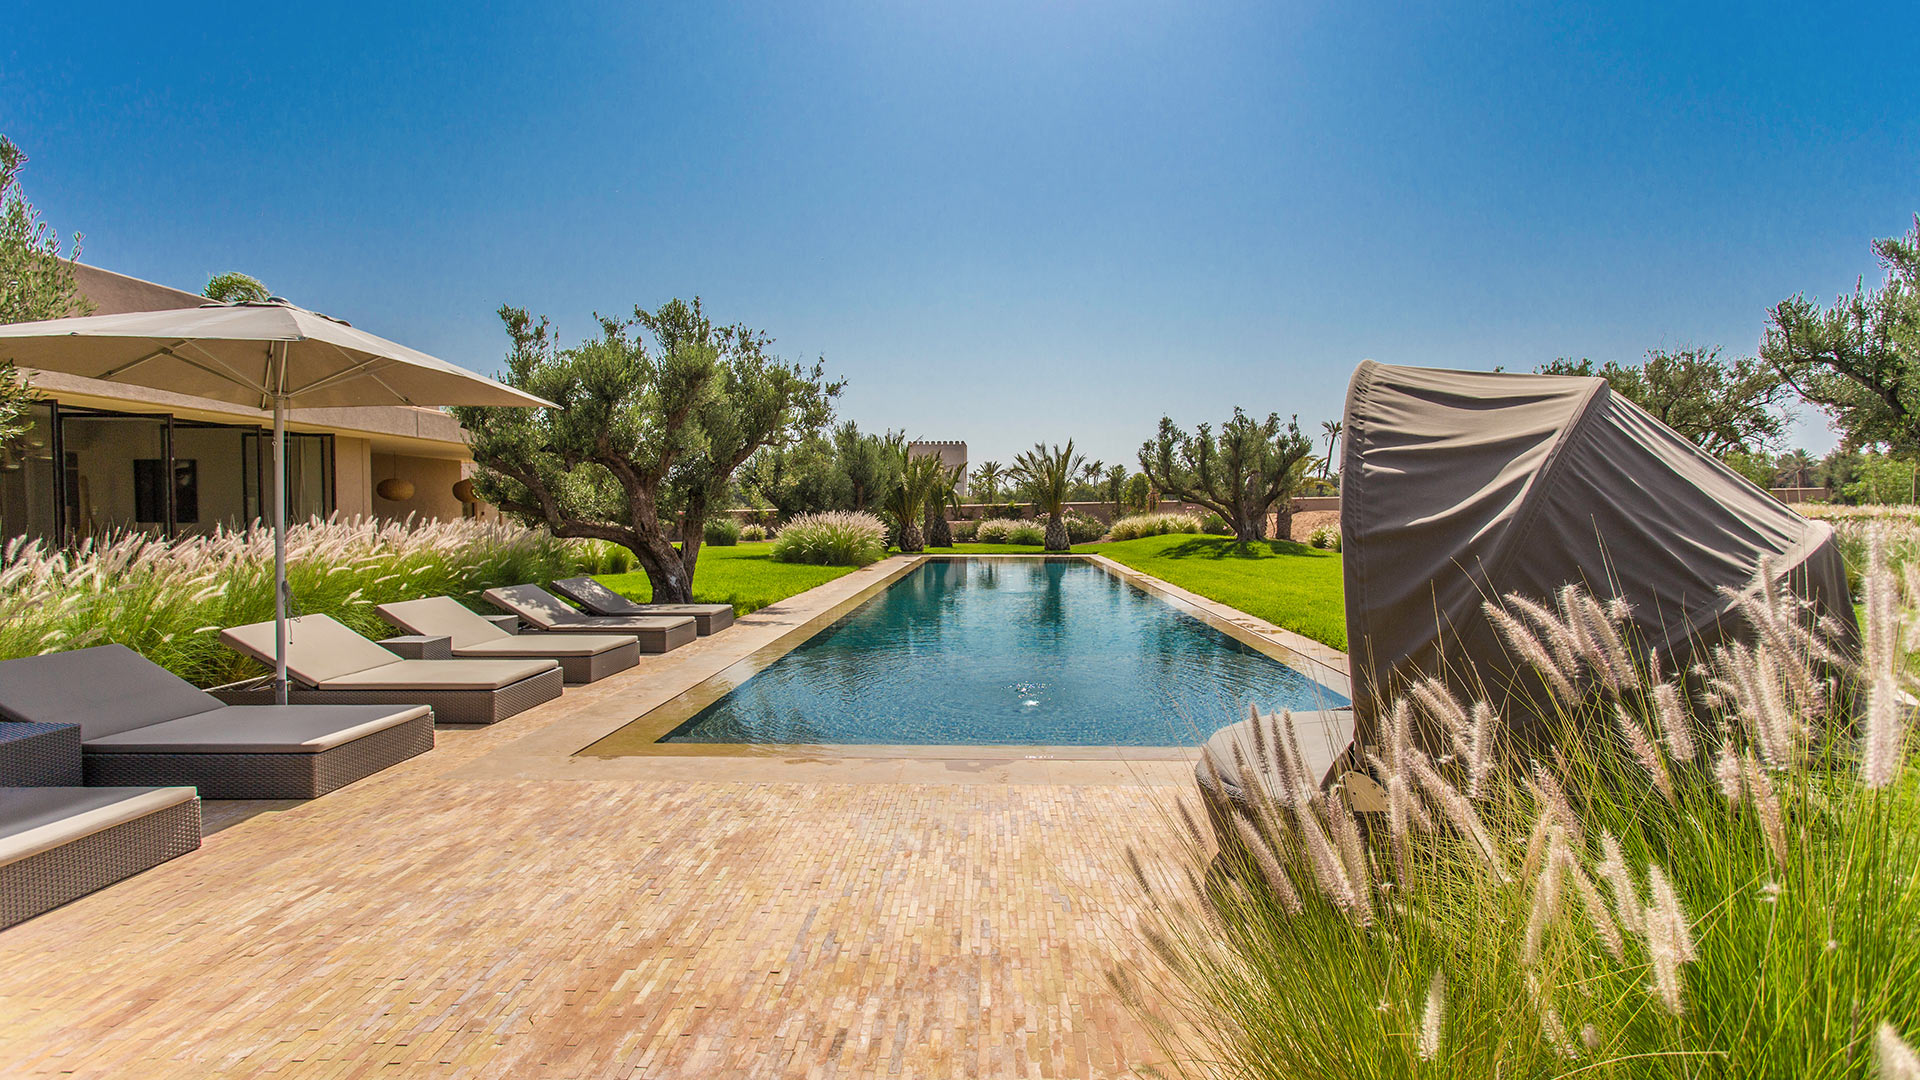 Villa Etoile des Sables, Rental in Marrakech